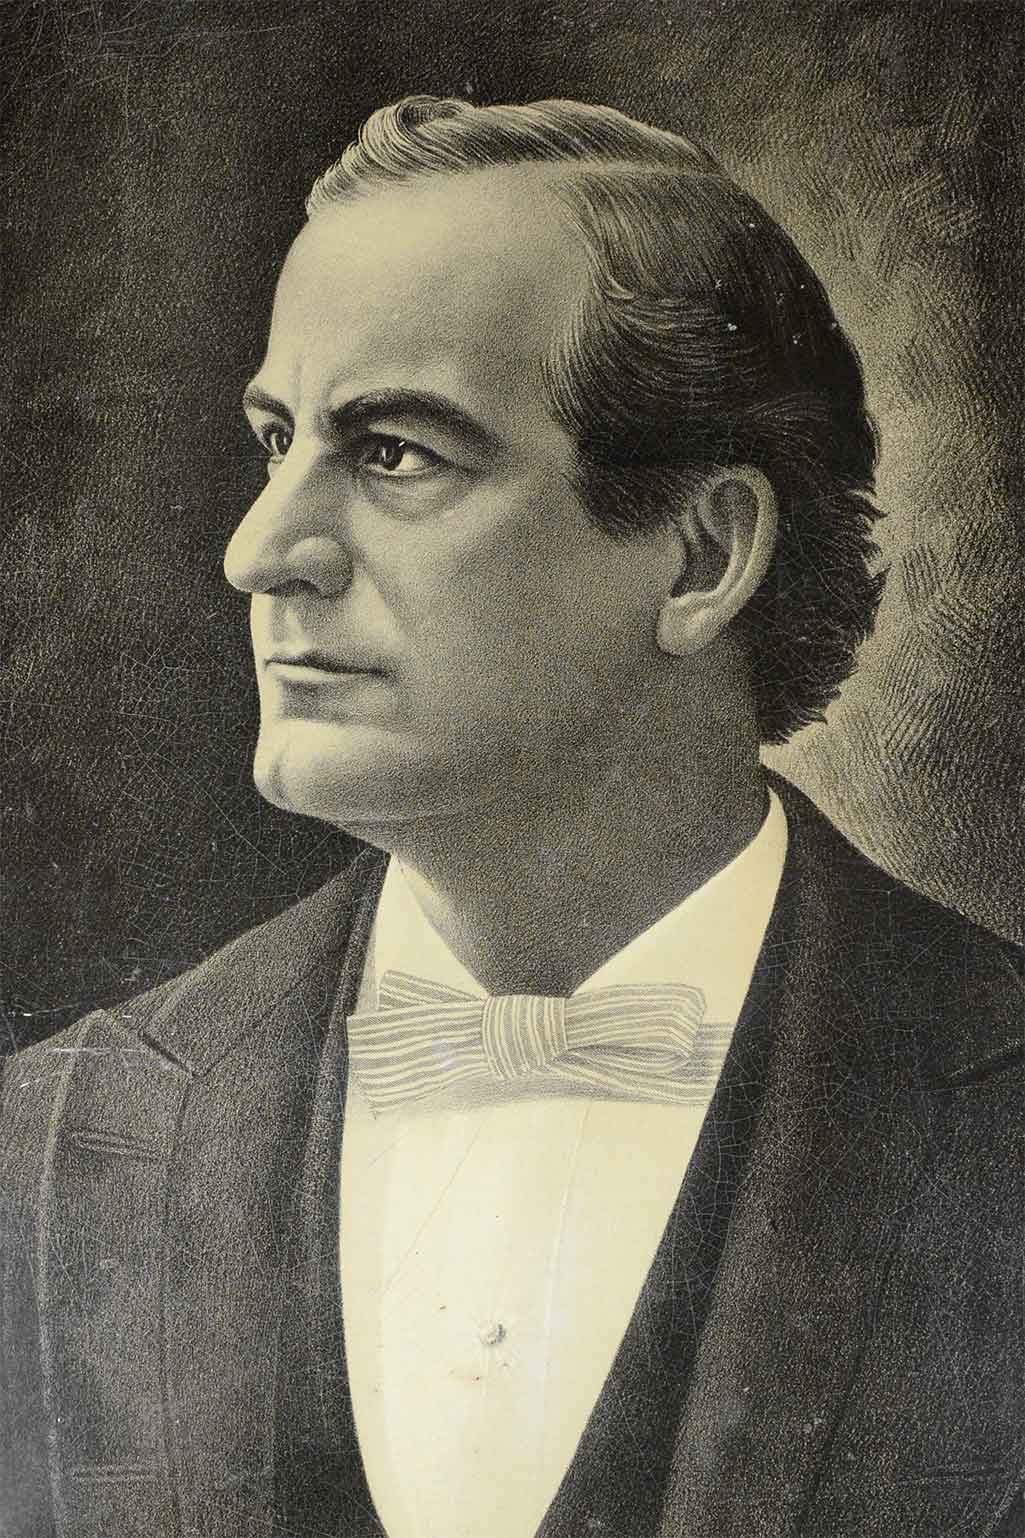 portrait of W.J. Bryan, middle aged-man in suit